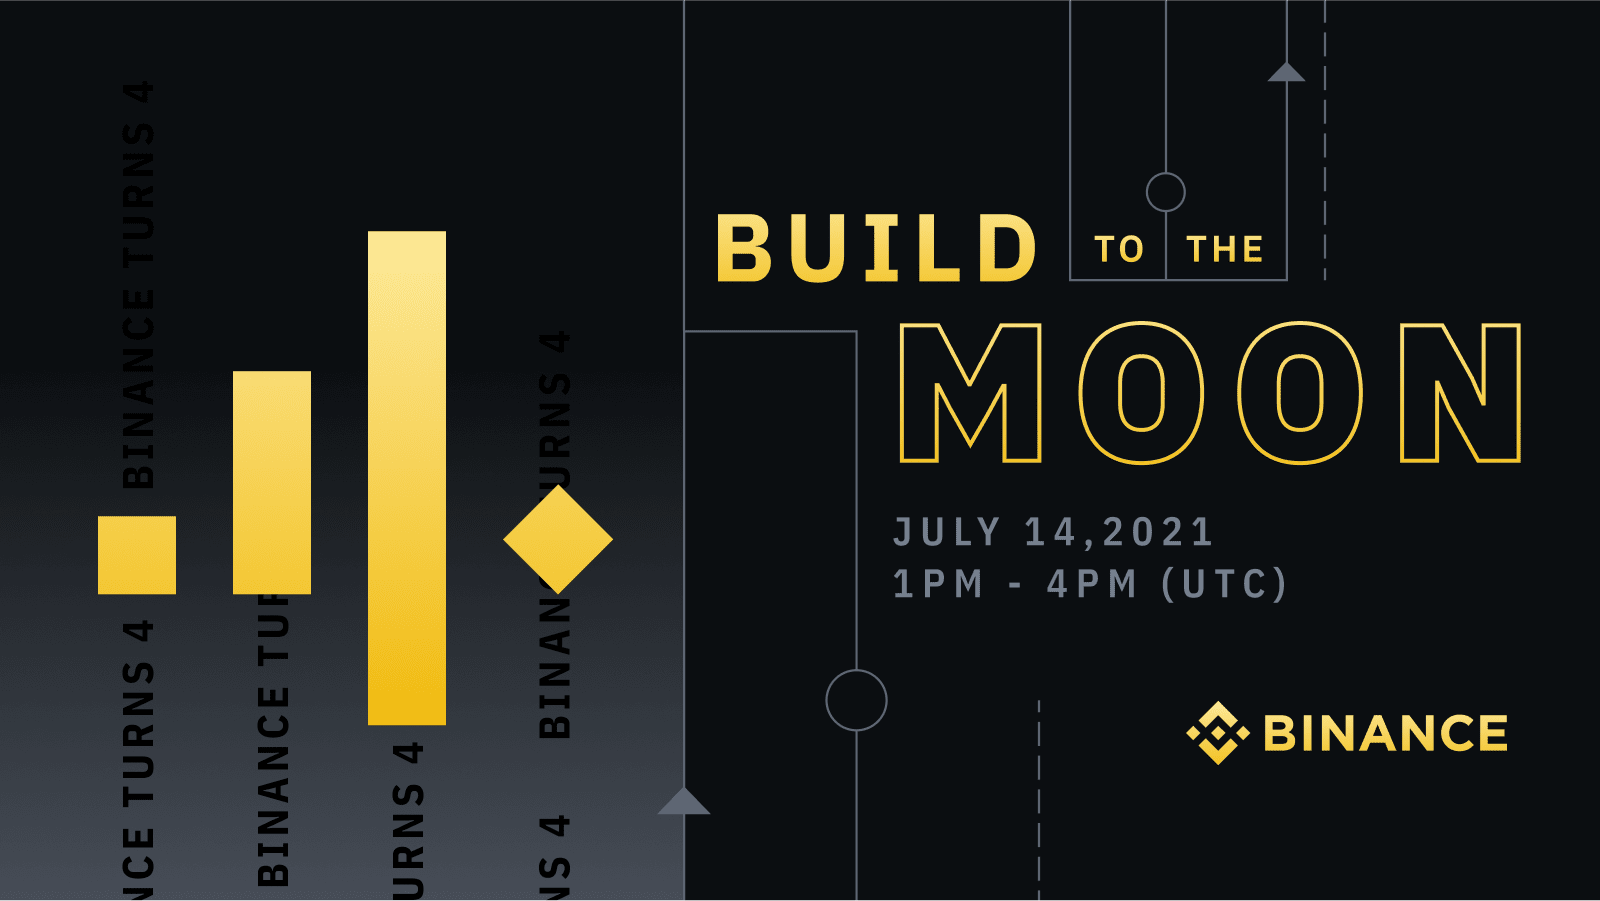 """""""Build to the Moon"""" Concert Experience: 4th Anniversary Event Revealed Cryptocurrency Trading Signals, Strategies & Templates 